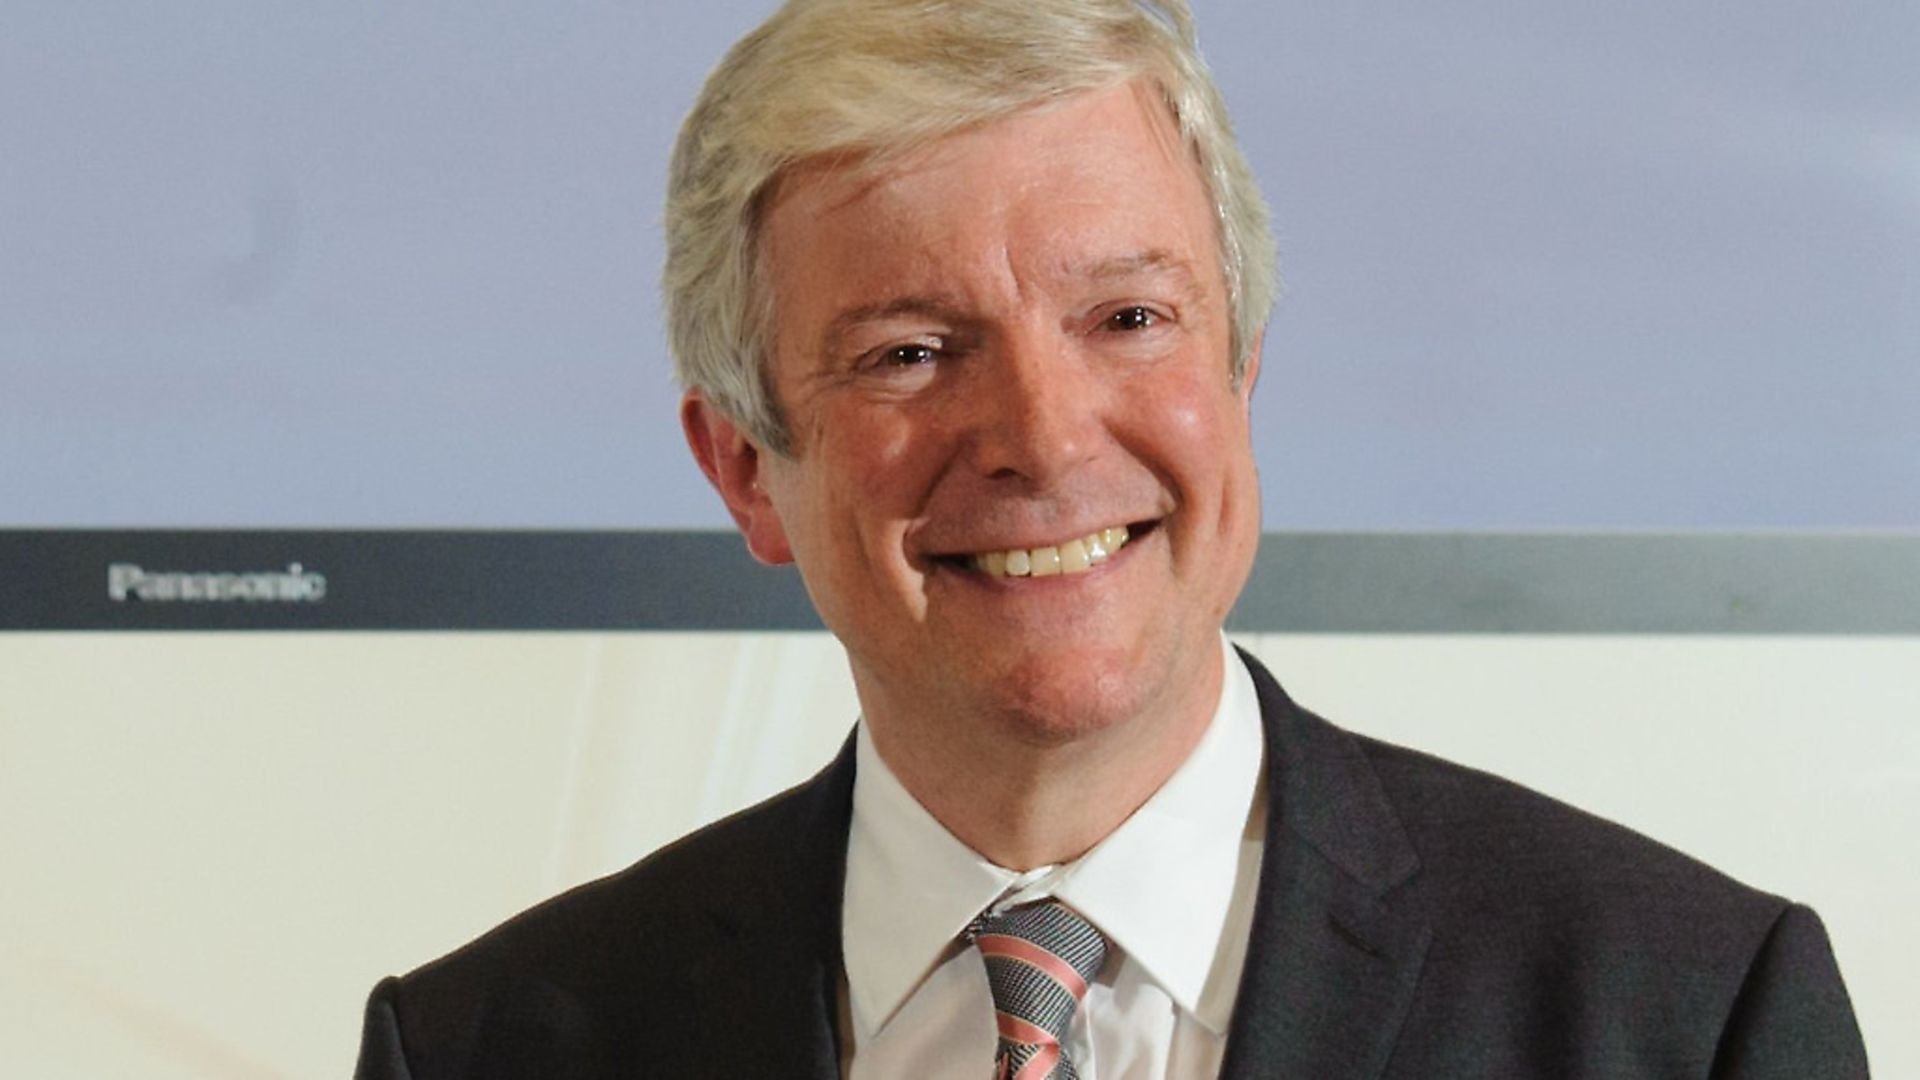 BBC Director General Tony Hall. Picture: Tony Hall - Credit: PA Archive/PA Images